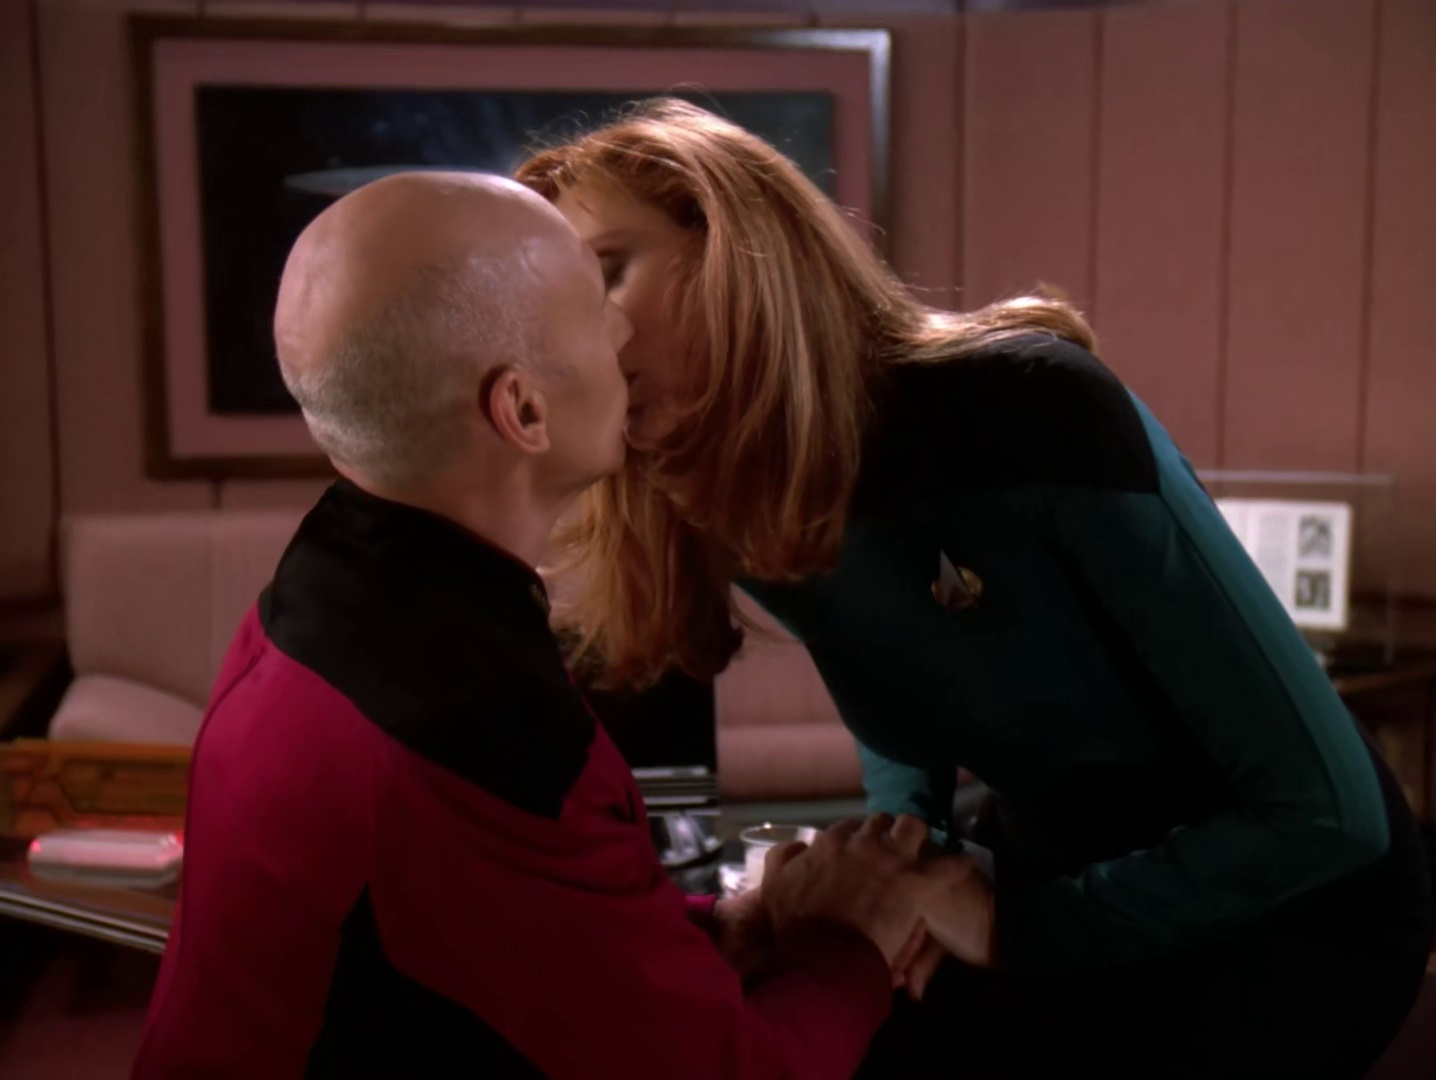 picard and crusher relationship